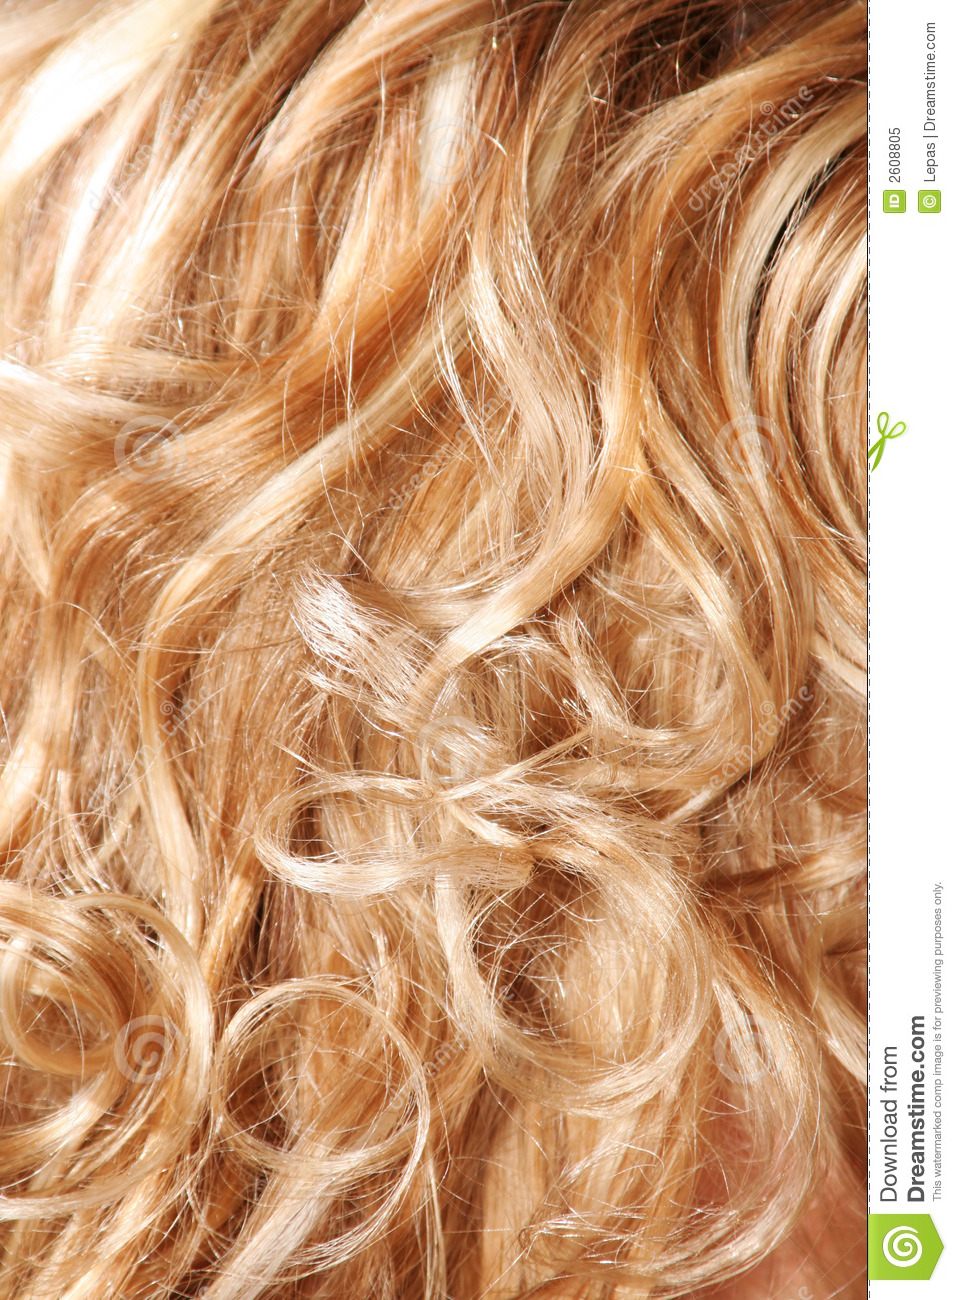 Hair Detail Royalty Free Stock Photo Image 2608805